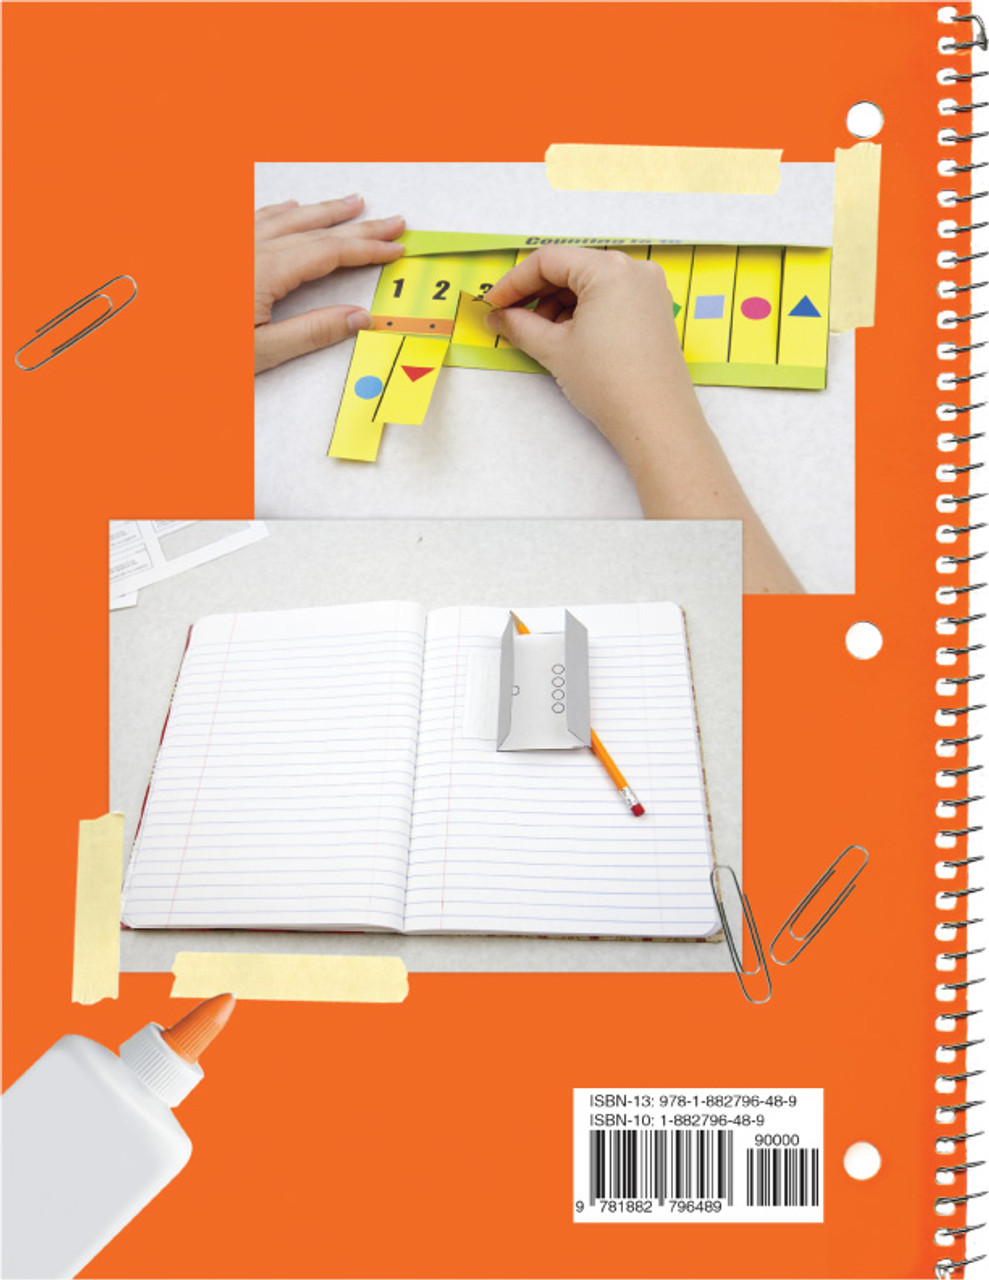 Nc mathmanip sums10 sept19 layout 1 (page 01)